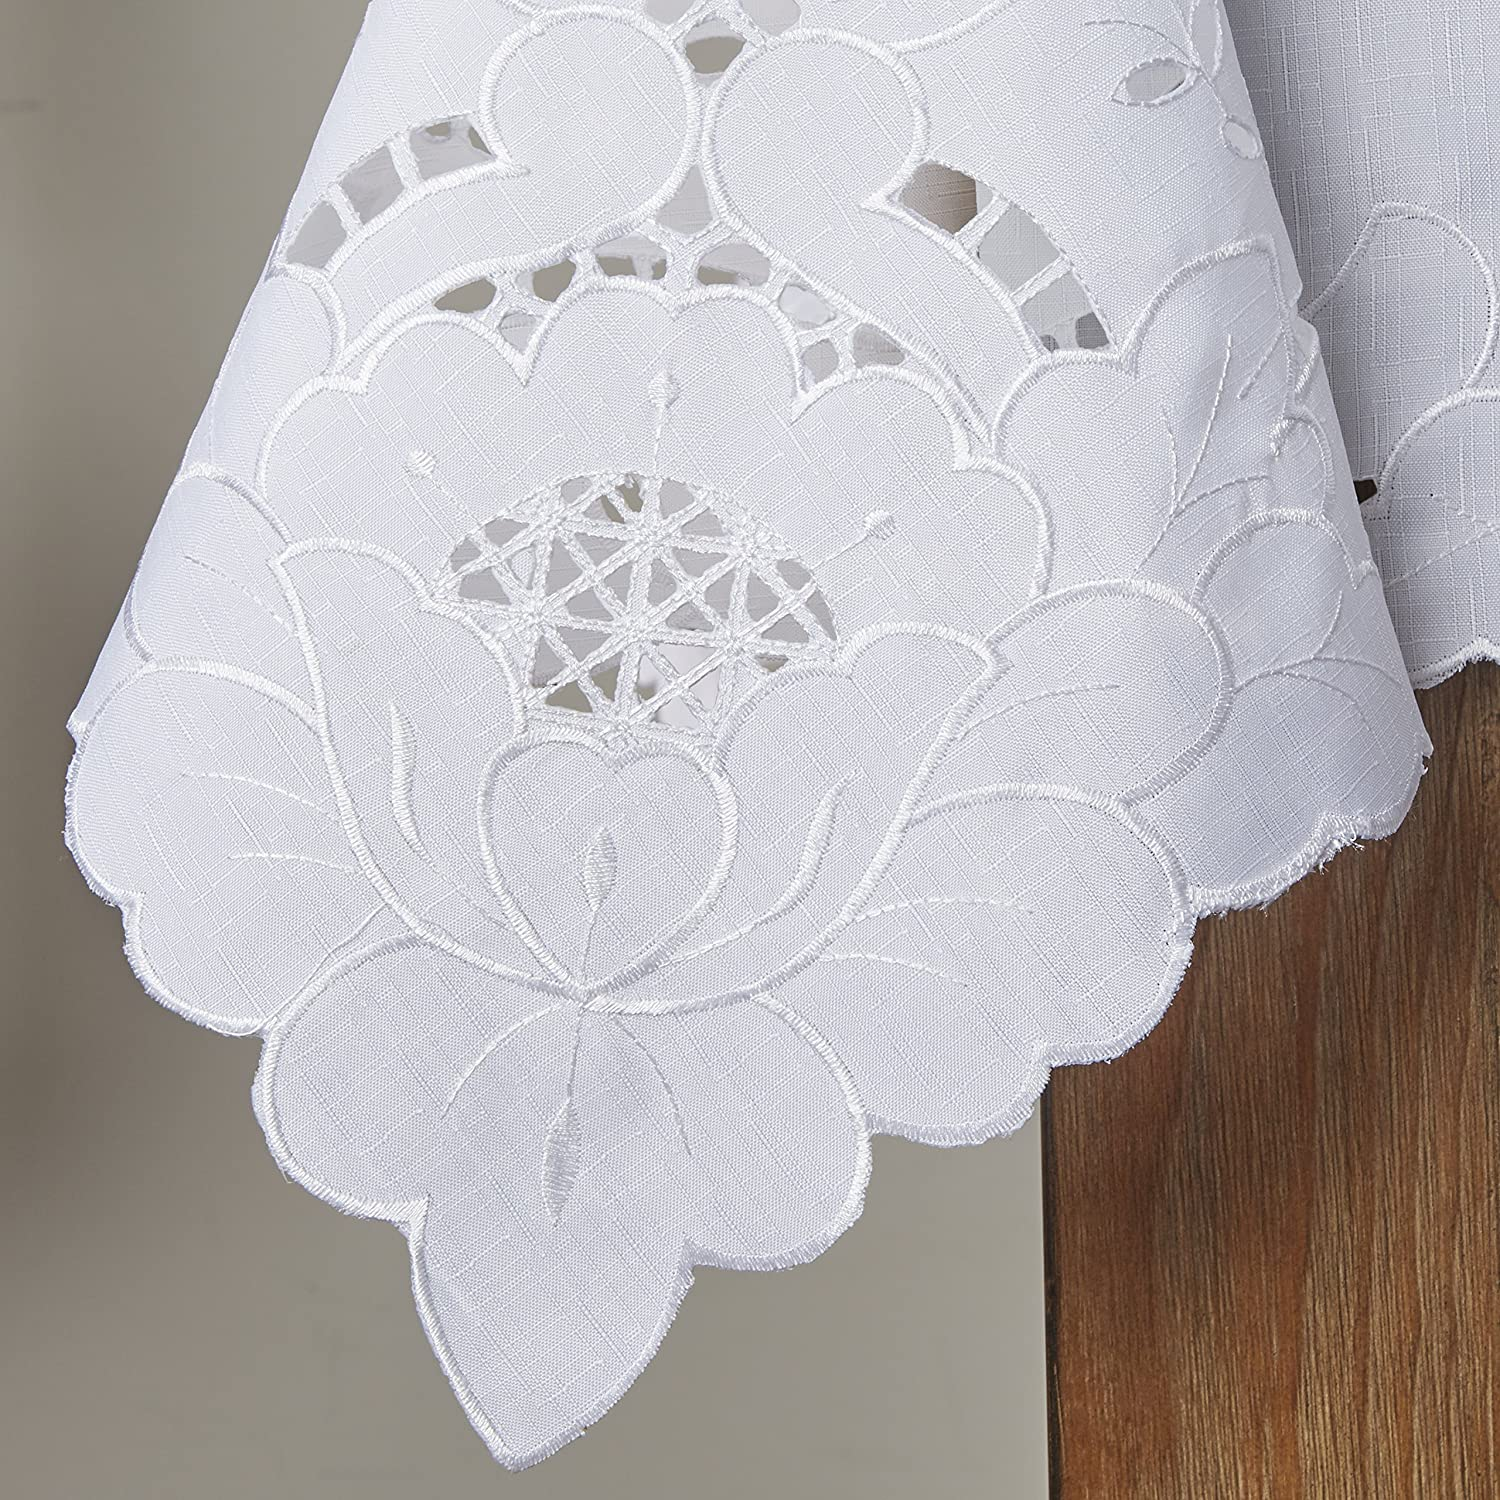 Violet Linen Sapphire Embroidered Design Tablecloth 60 x 120 White SAPPHIRE WH-6